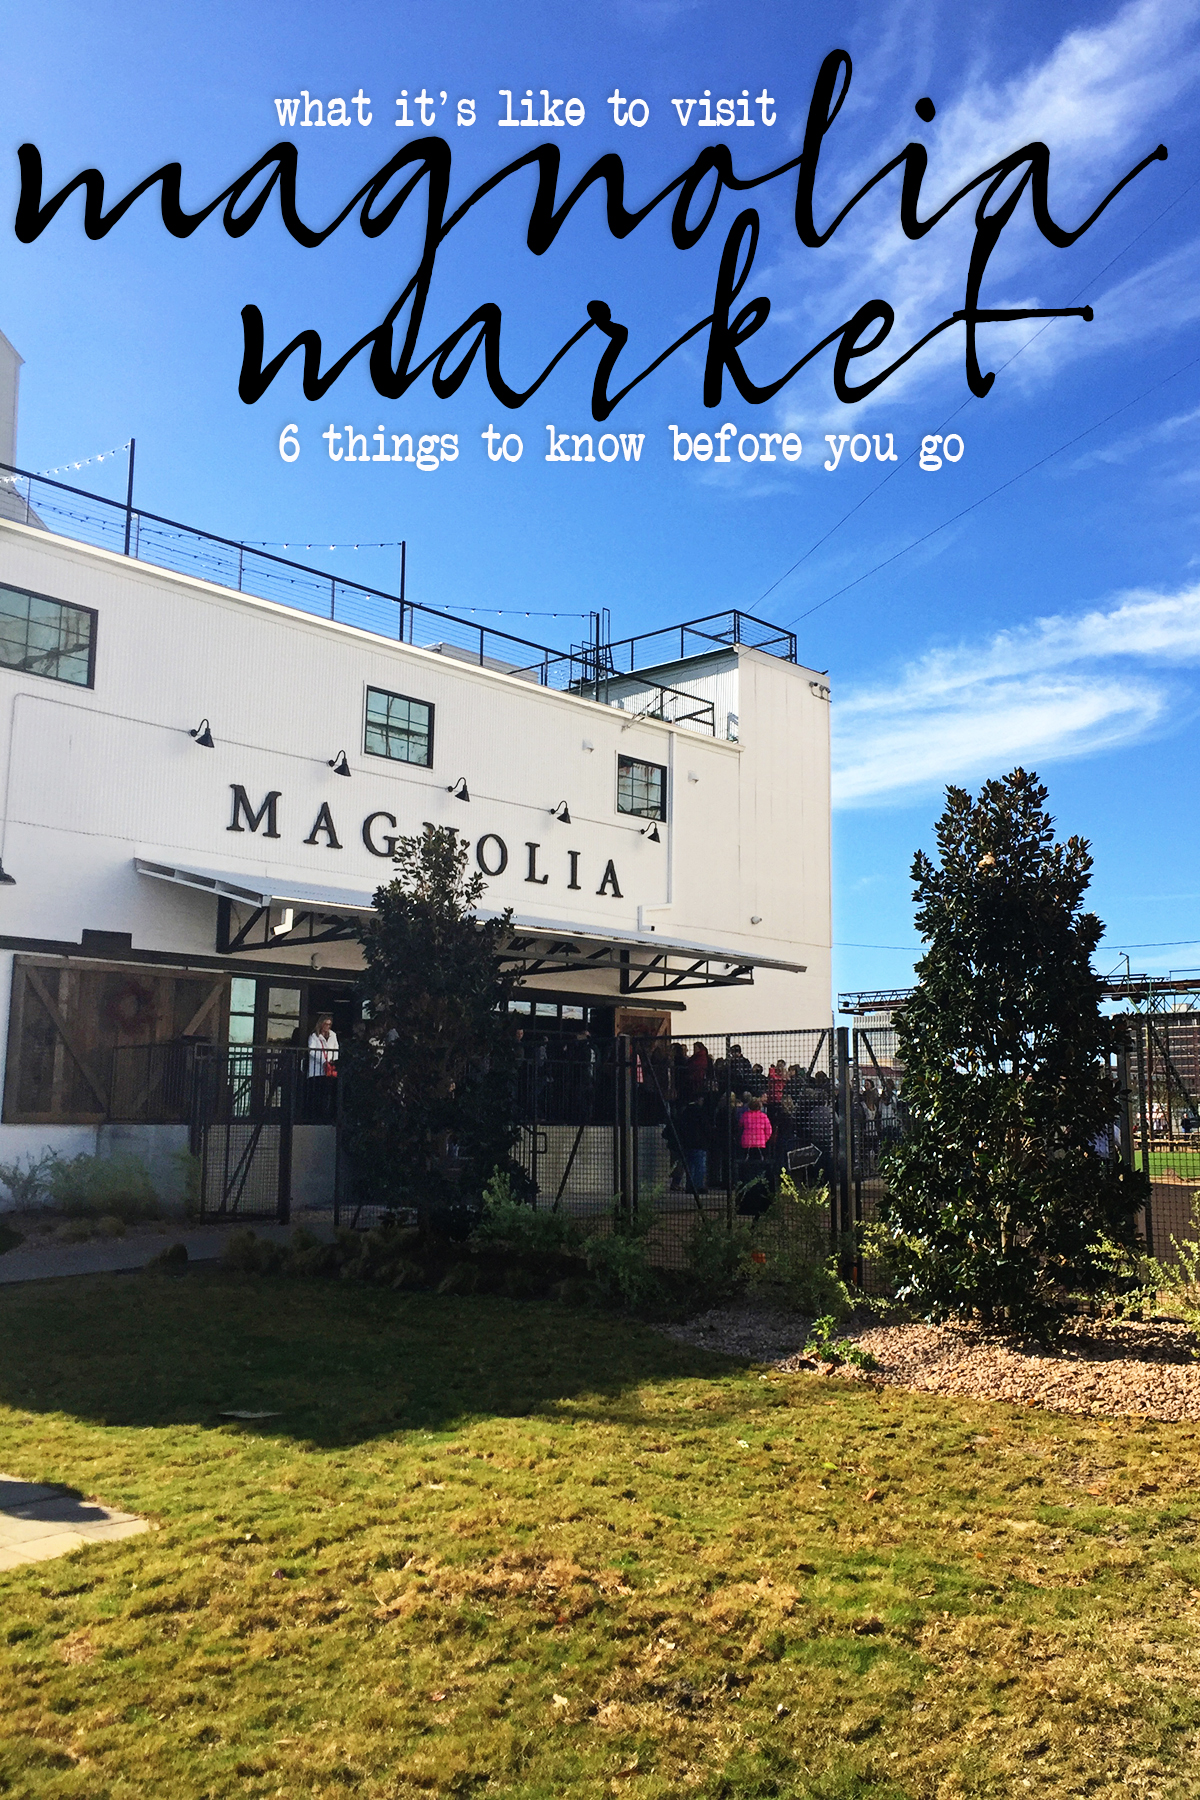 Visit Magnolia Market And The Silos 6 Things To Know Before You